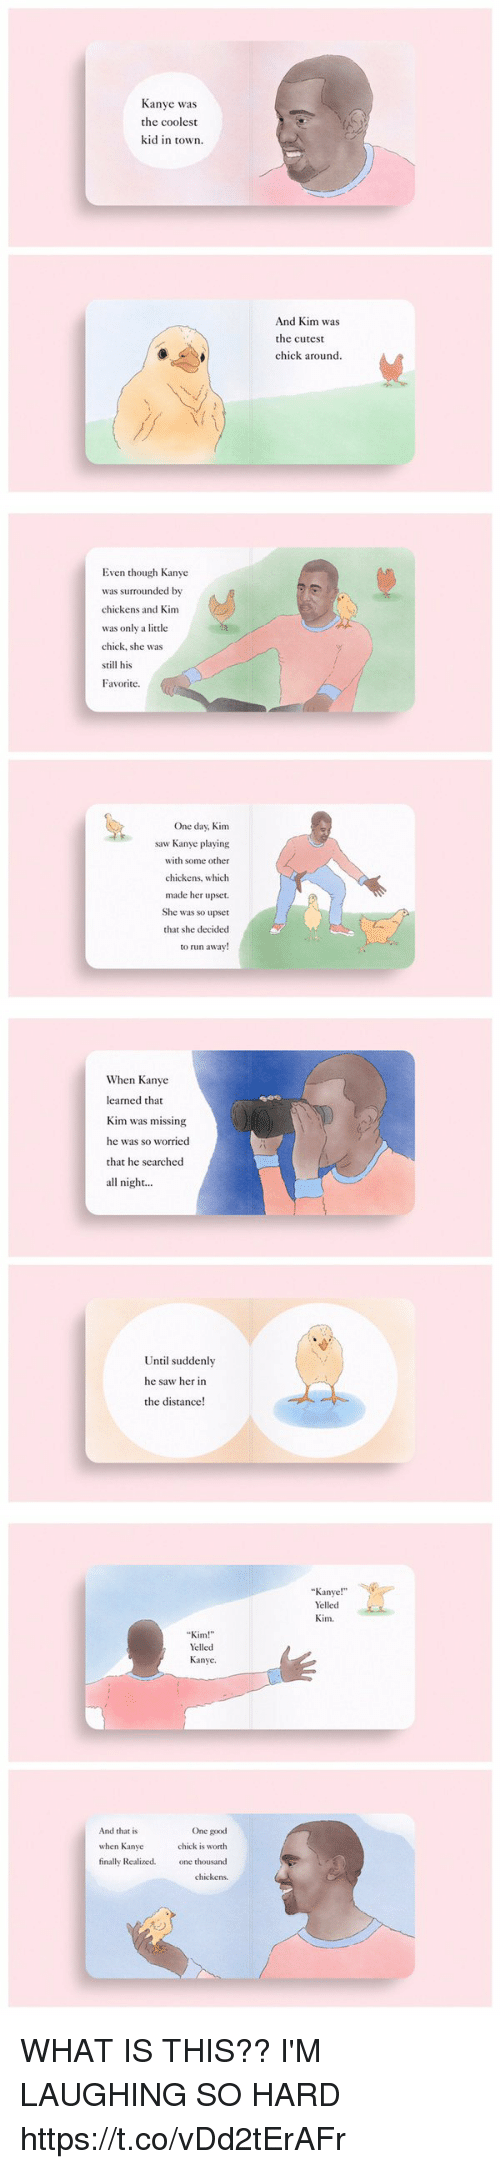 """Kanye, Run, and Saw: Kanye was  the coolest  kid in town.  And Kim was  the cutest  chick around.   Even though Kanye  was surrounded by  chickens and Kim  was only a little  chick, she was  still his  Favorite.  One day, Kim  saw Kanye playing  with some other  chickens, which  made her upset.  She was so upset  that she decided  to run away   When Kanye  learned that  Kim was missing  he was so worried  that he searched  all night...  Until suddenly  he saw her in  the distance!   Kim!""""  Yelled  Kanye.  And that is  One good  chick is worth  when Kanye  finally Realized.  one thousand  chickens.  Kanye  Yelled  Kim WHAT IS THIS?? I'M LAUGHING SO HARD https://t.co/vDd2tErAFr"""